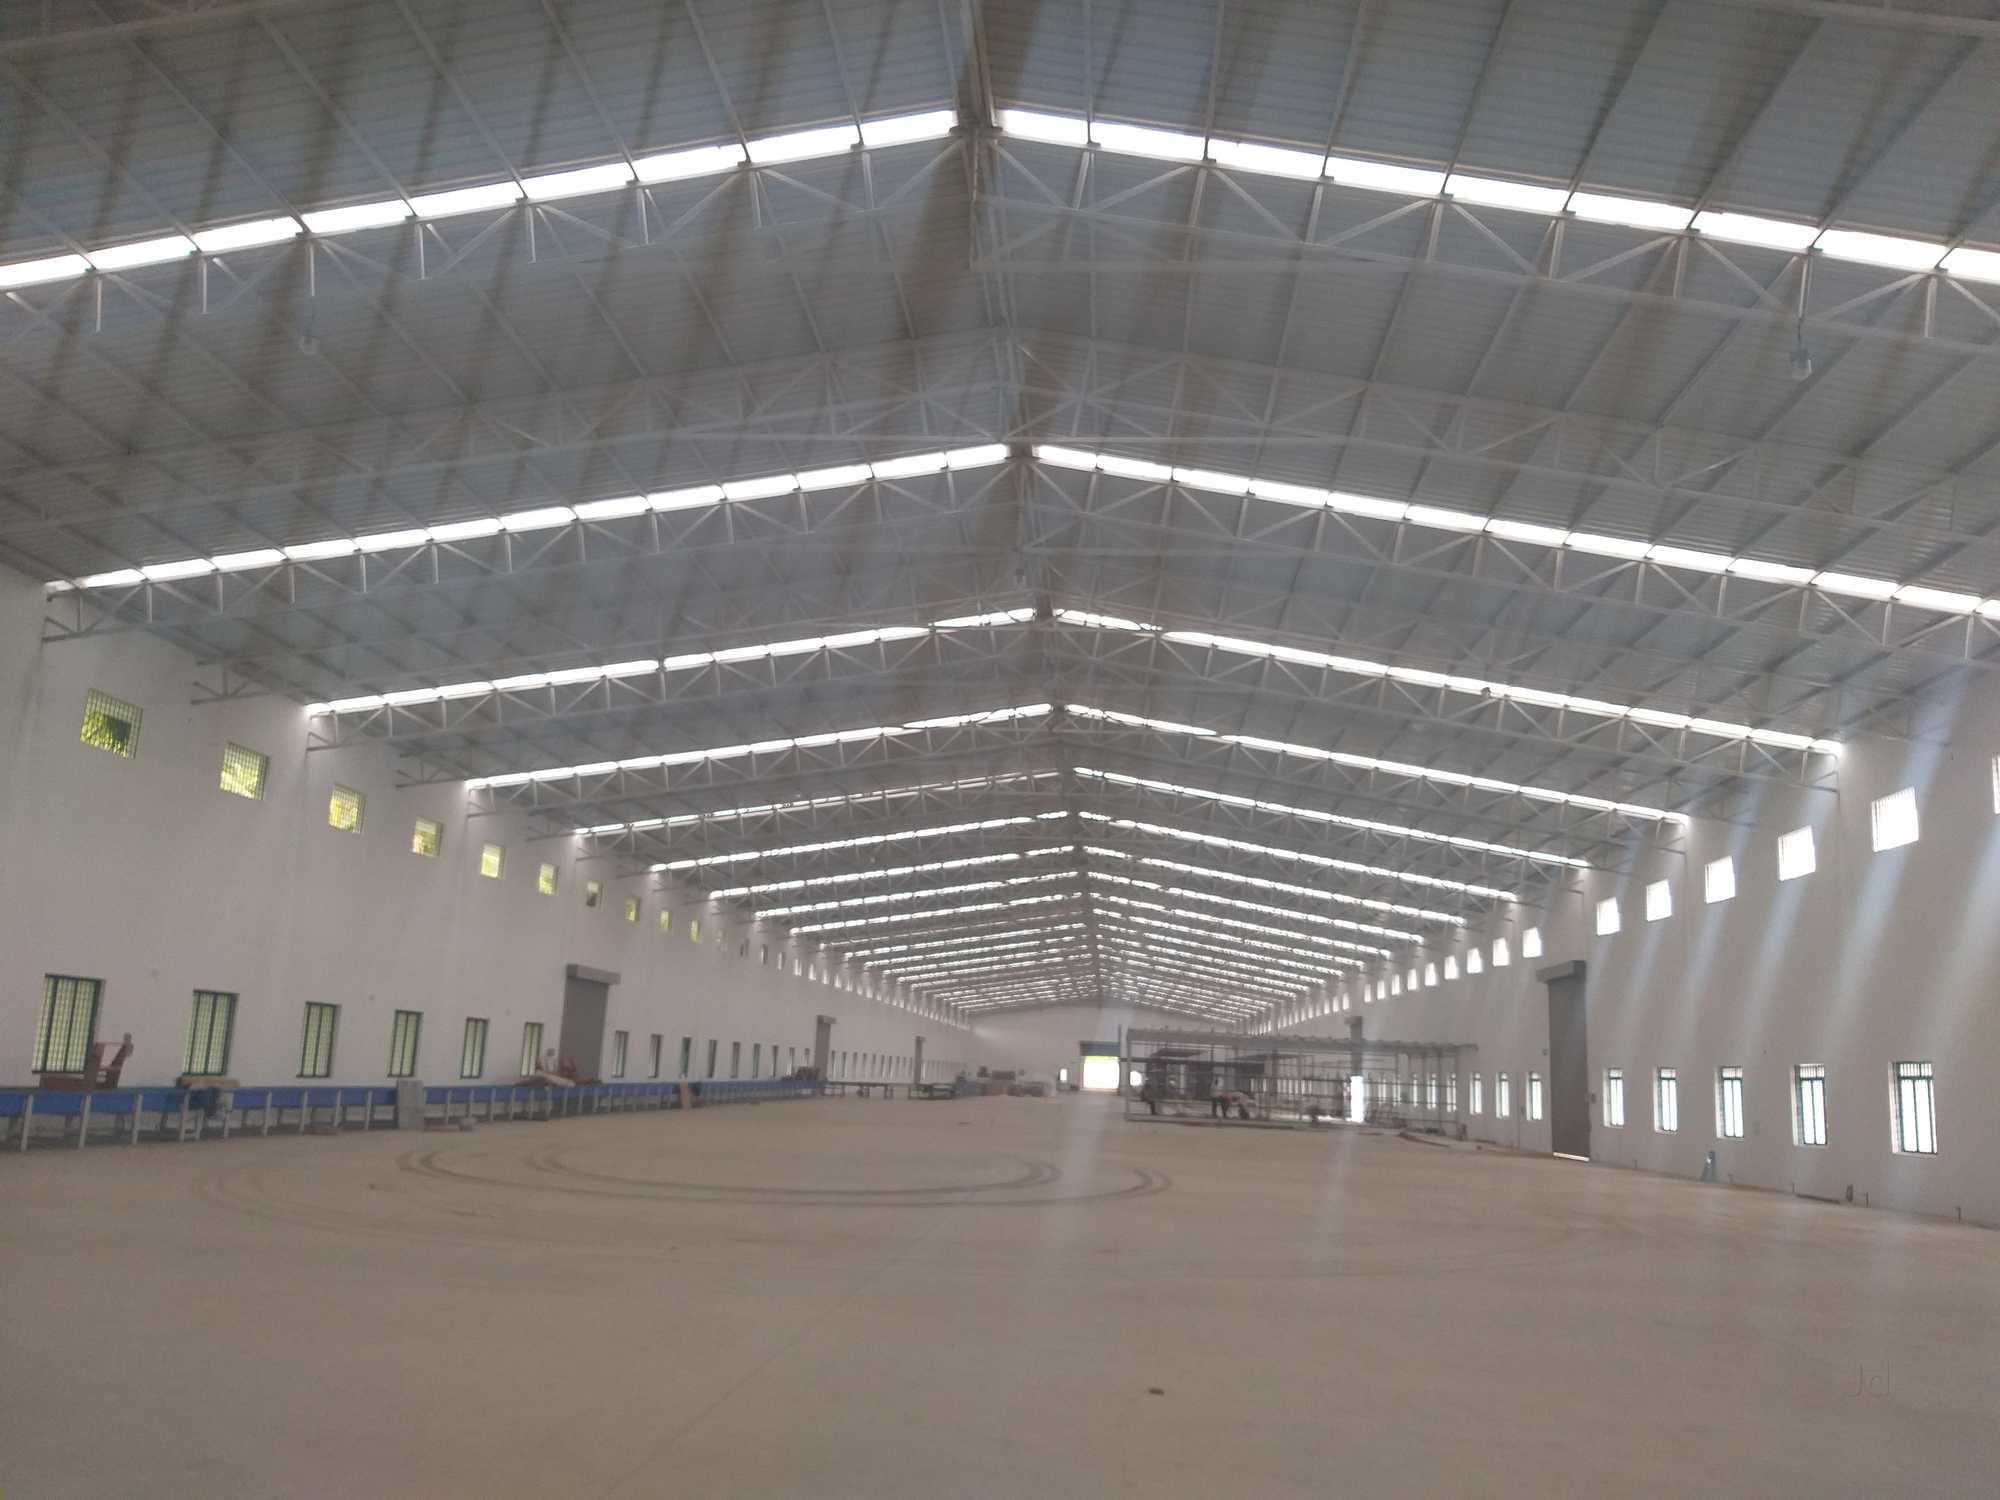 Quality Roofs Pvt Ltd, best roofing contractors in chennai, metal roofing contractors in chennai, roofing contractors in anna nagar, roofing contractors in adaiyar, roofing contractors in ambatur, roofing contractors